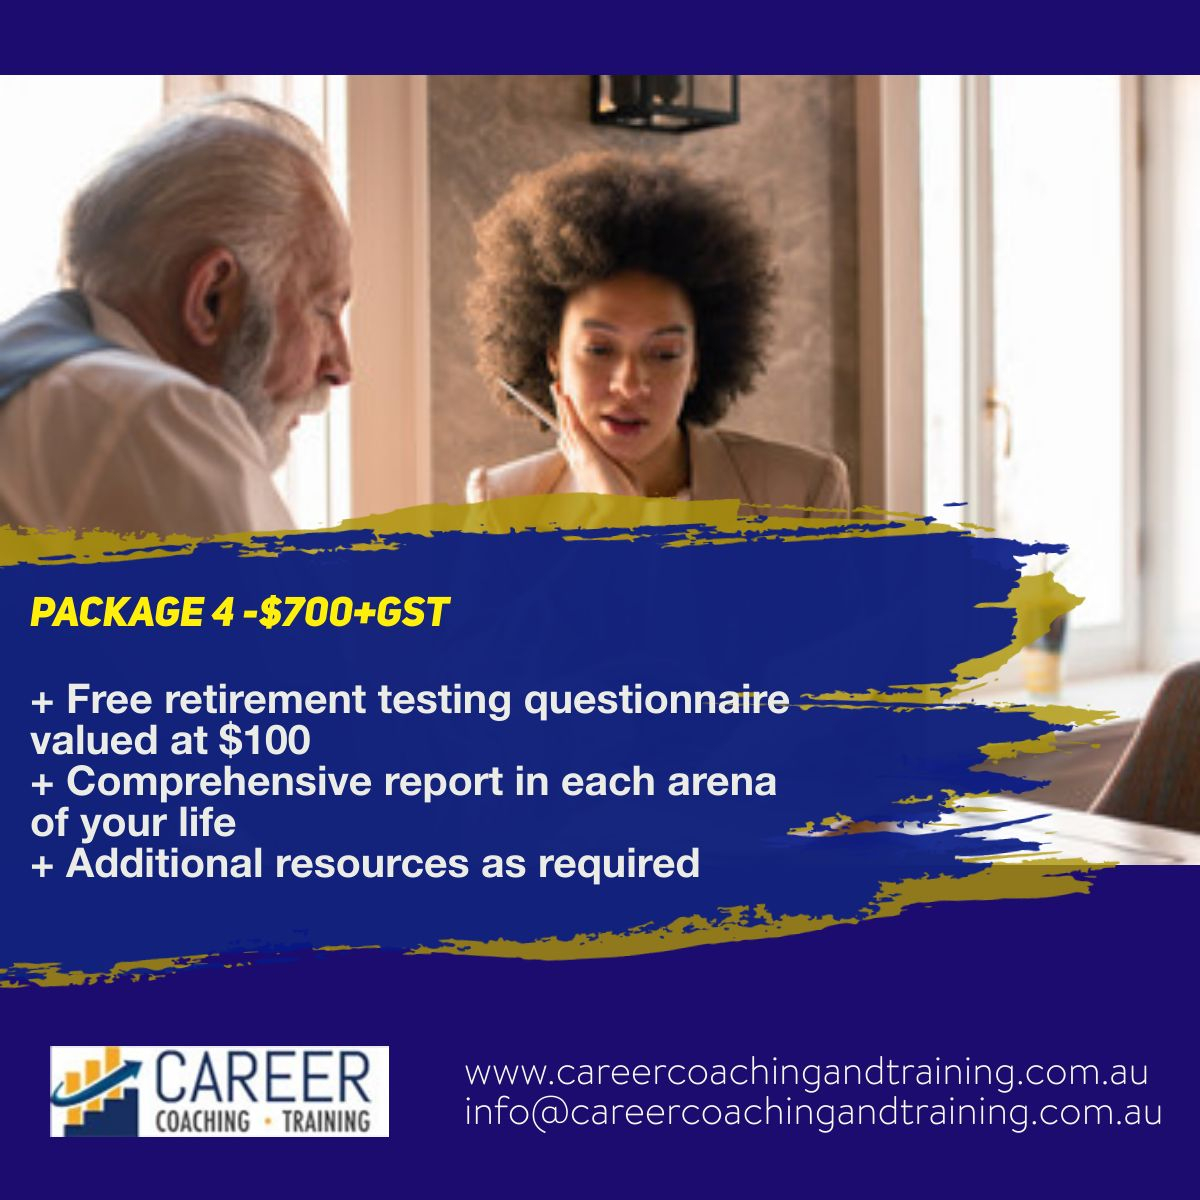 Retirement Package 4